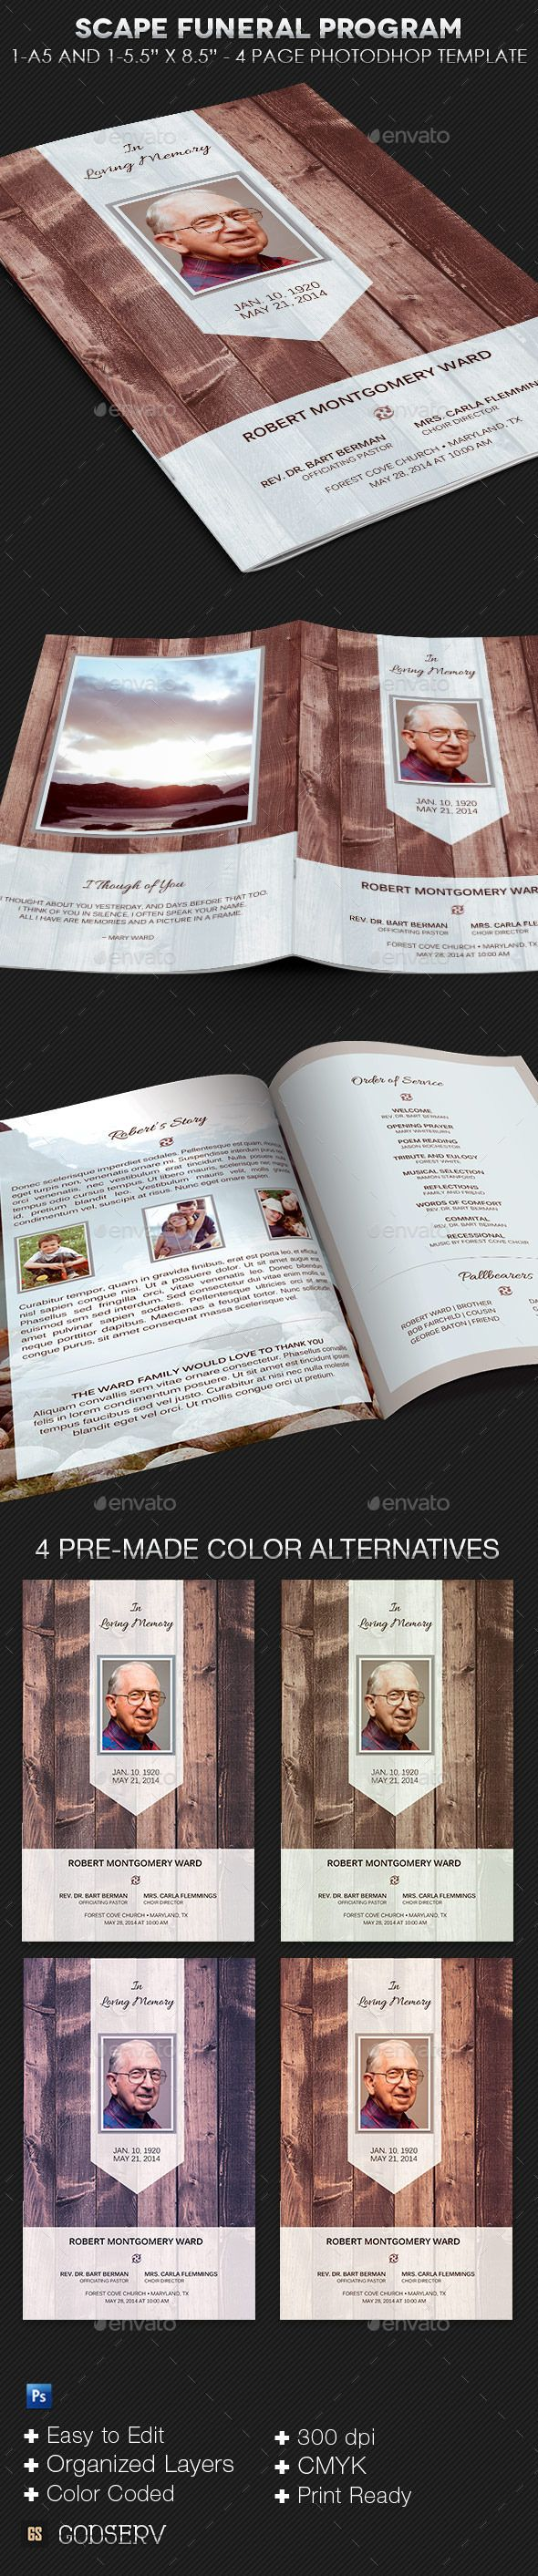 Scape Funeral Program Template   Template, Brochures and Brochure ...